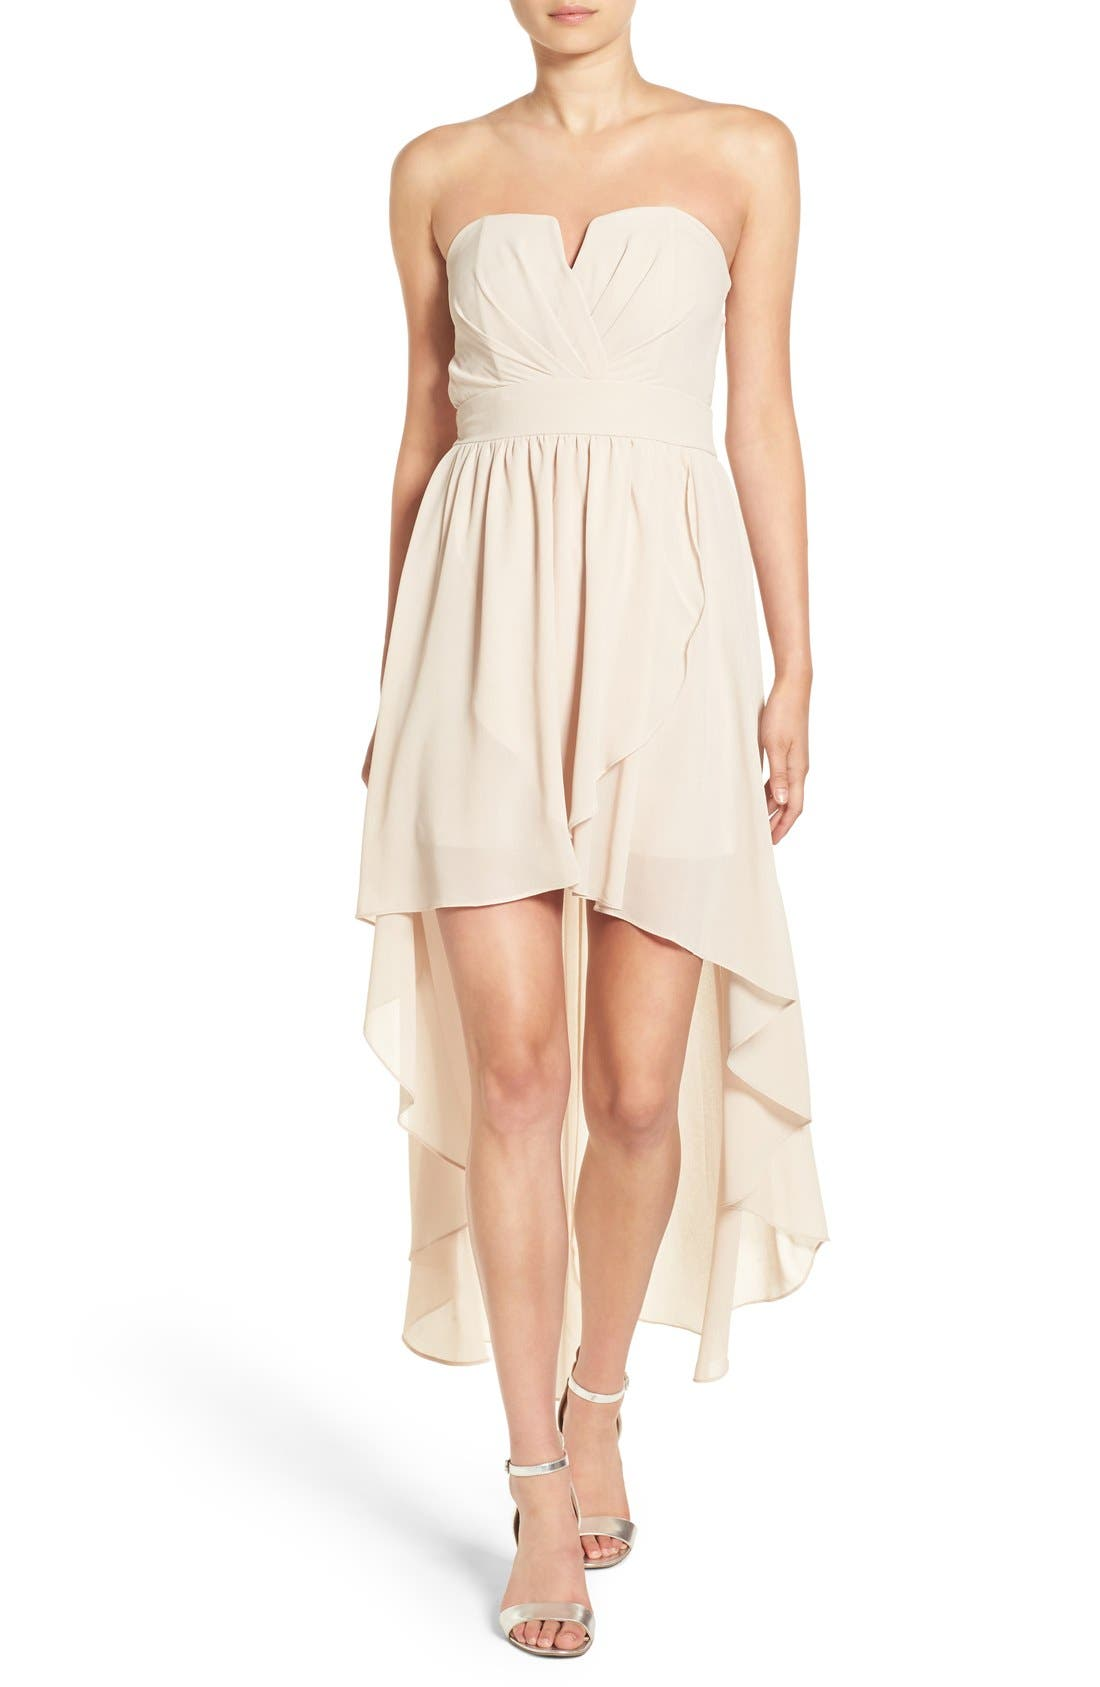 Main Image - TFNC 'Thalia' Strapless High/Low Dress